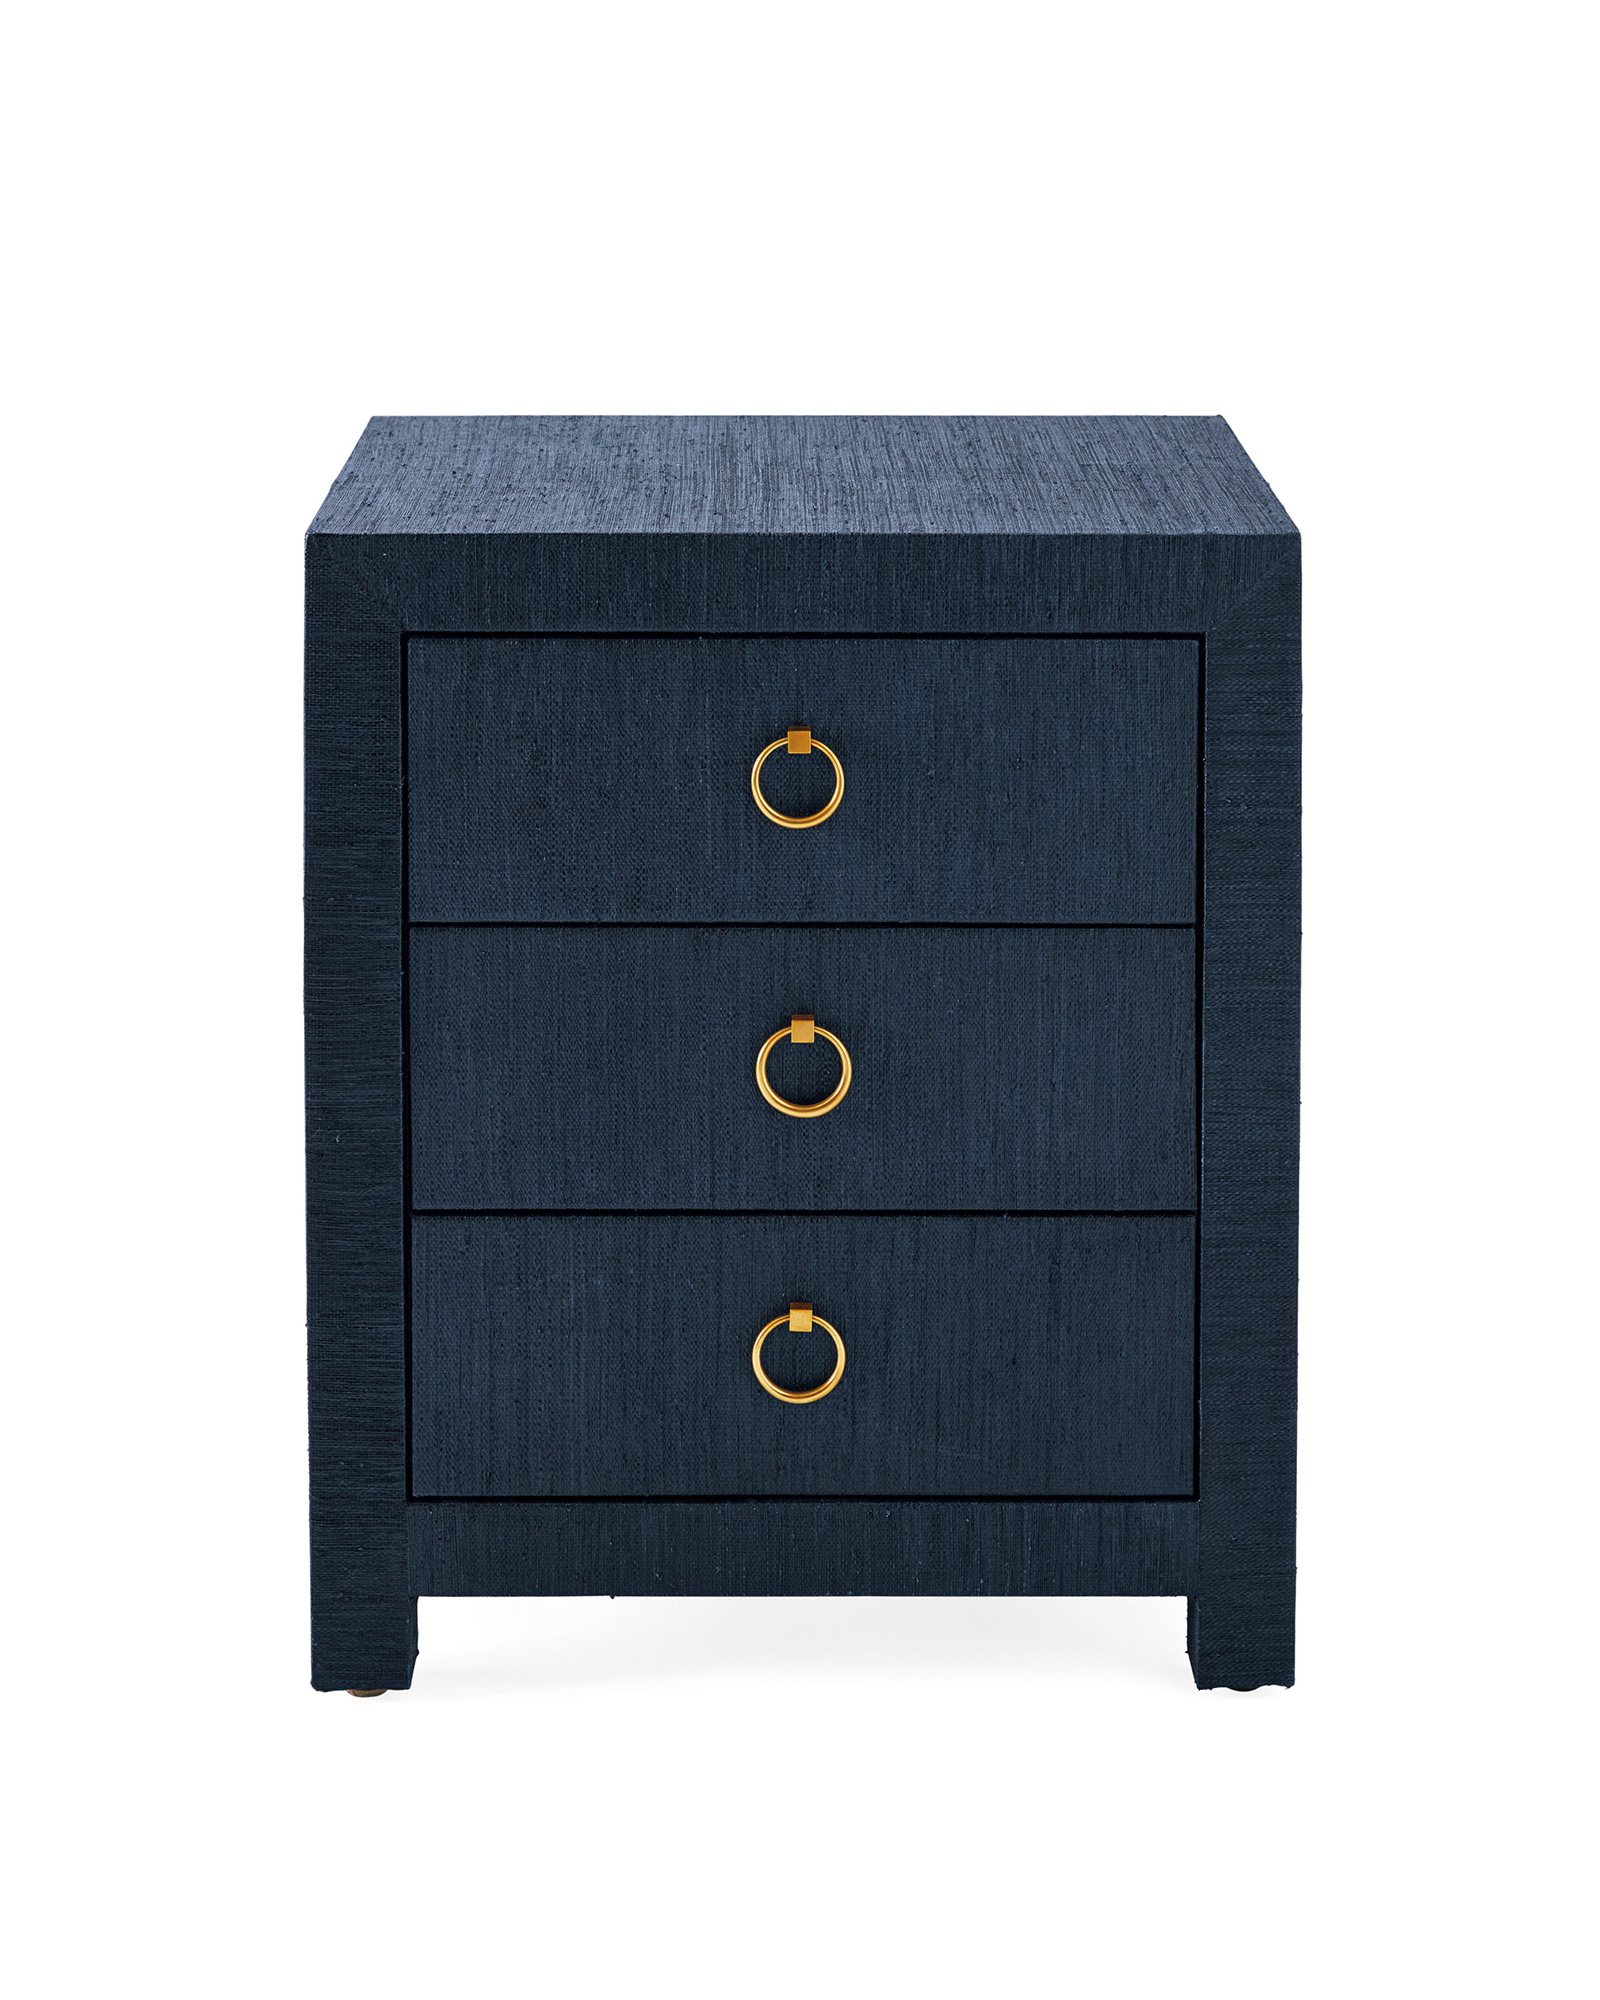 nightstands emily henderson img walnut one drawer accent table project blake raffia nightstand dark wood blue lamps bedroom mirrored console target rowico furniture torchiere lamp